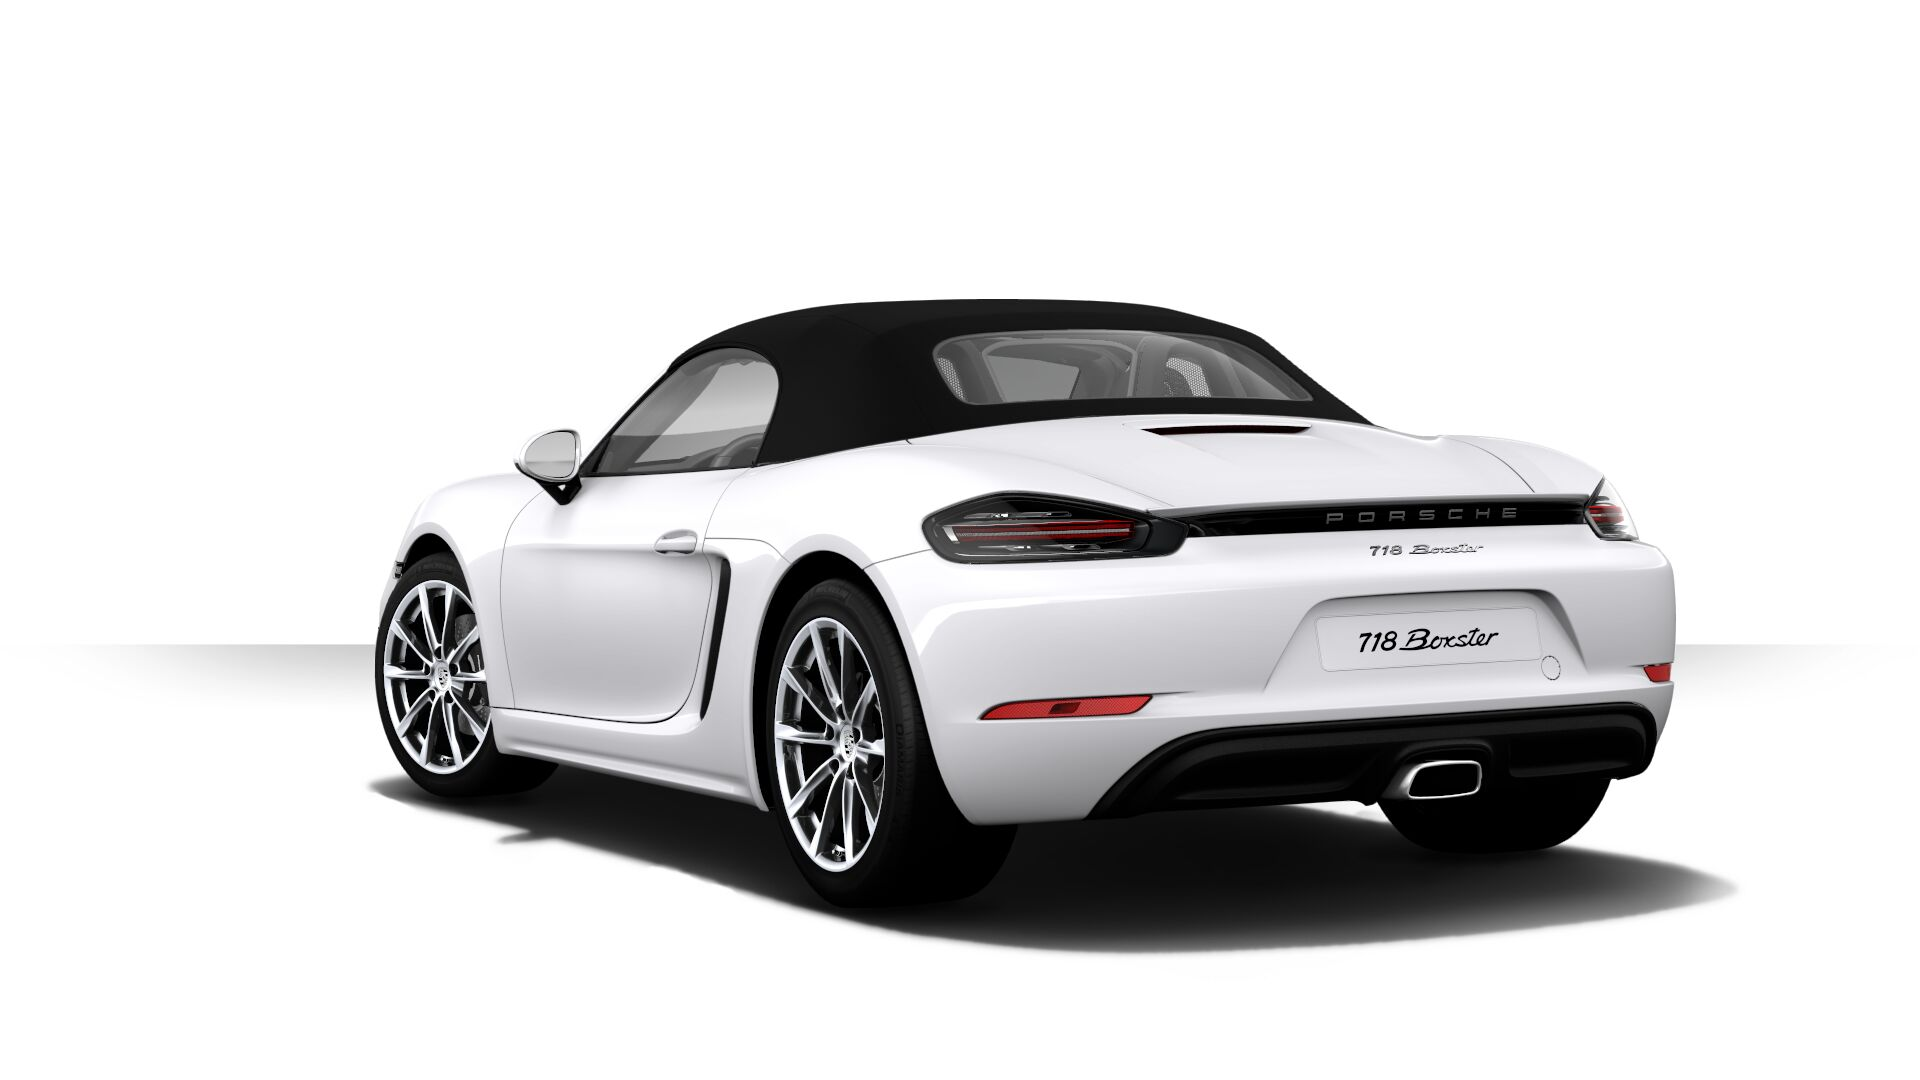 Porsche 718 Boxster キャララホワイトメタリック リア